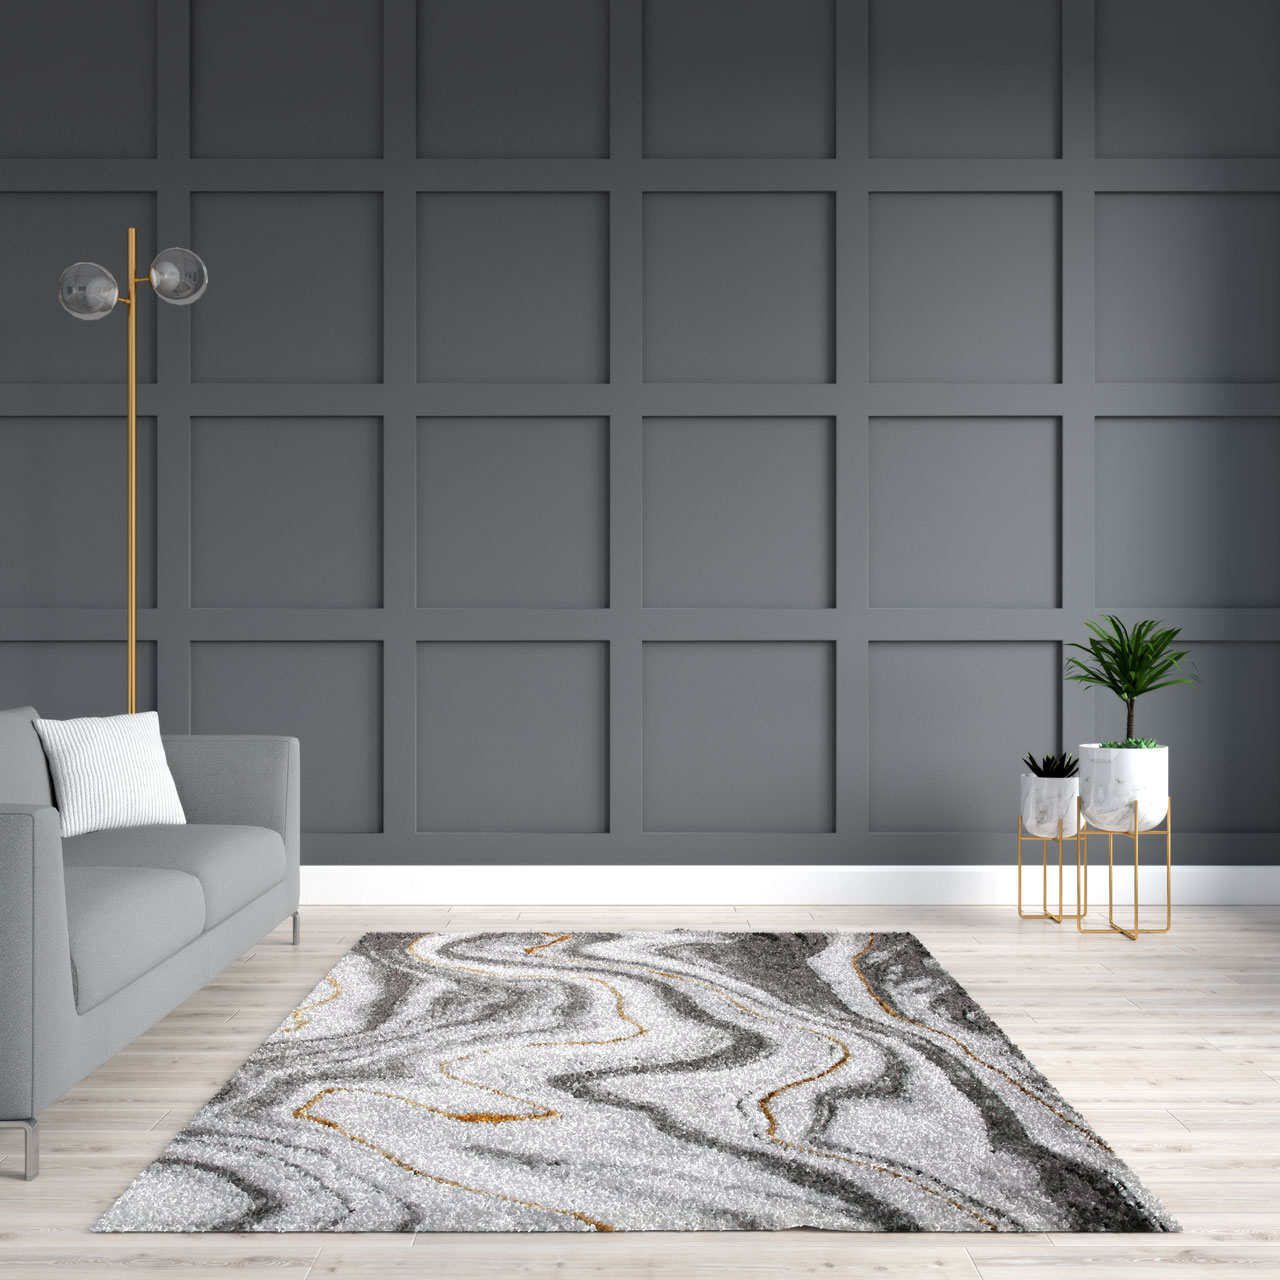 Gray and gold rug in living room with gray wall